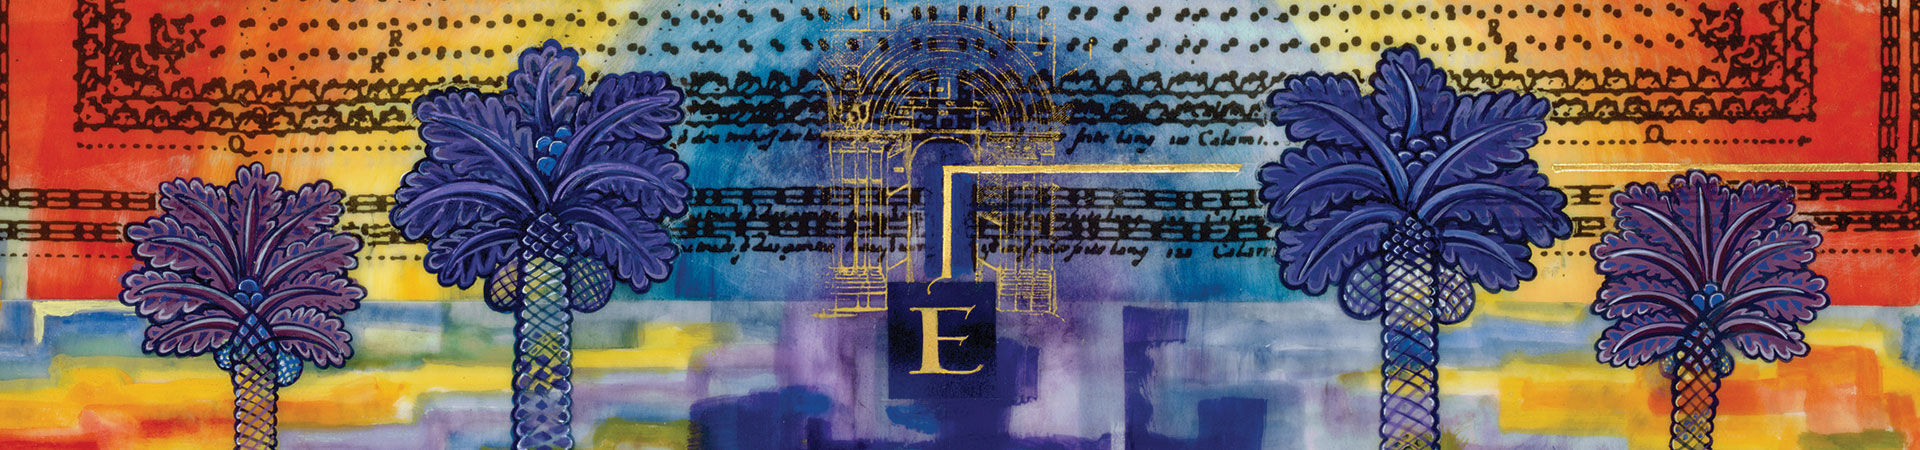 Ezekiel's Vision of the New Temple, Donald Jackson, Copyright 2005, The Saint John's Bible, Saint John's University, Collegeville, Minnesota USA. Used by permission. All rights reserved.